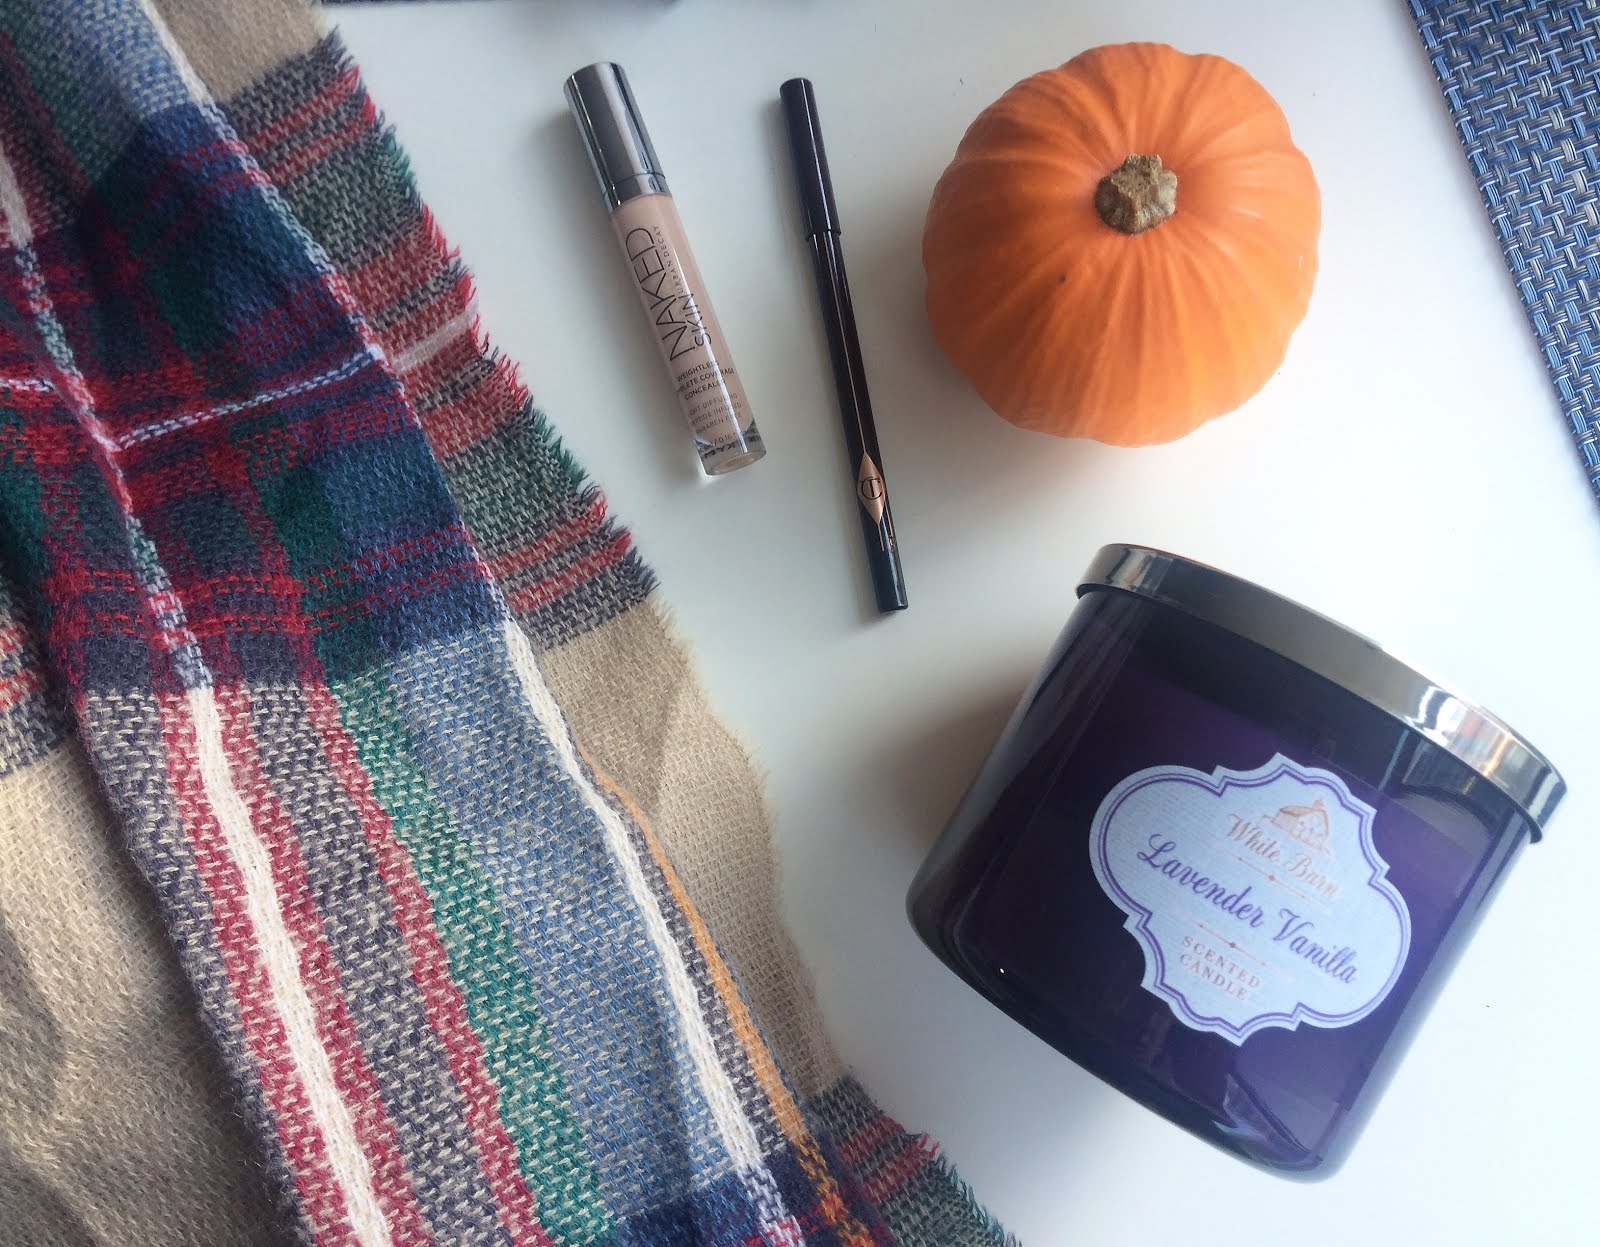 October Favorites: Plaid blanket scarf, bath and body works candle, urban decay concealer